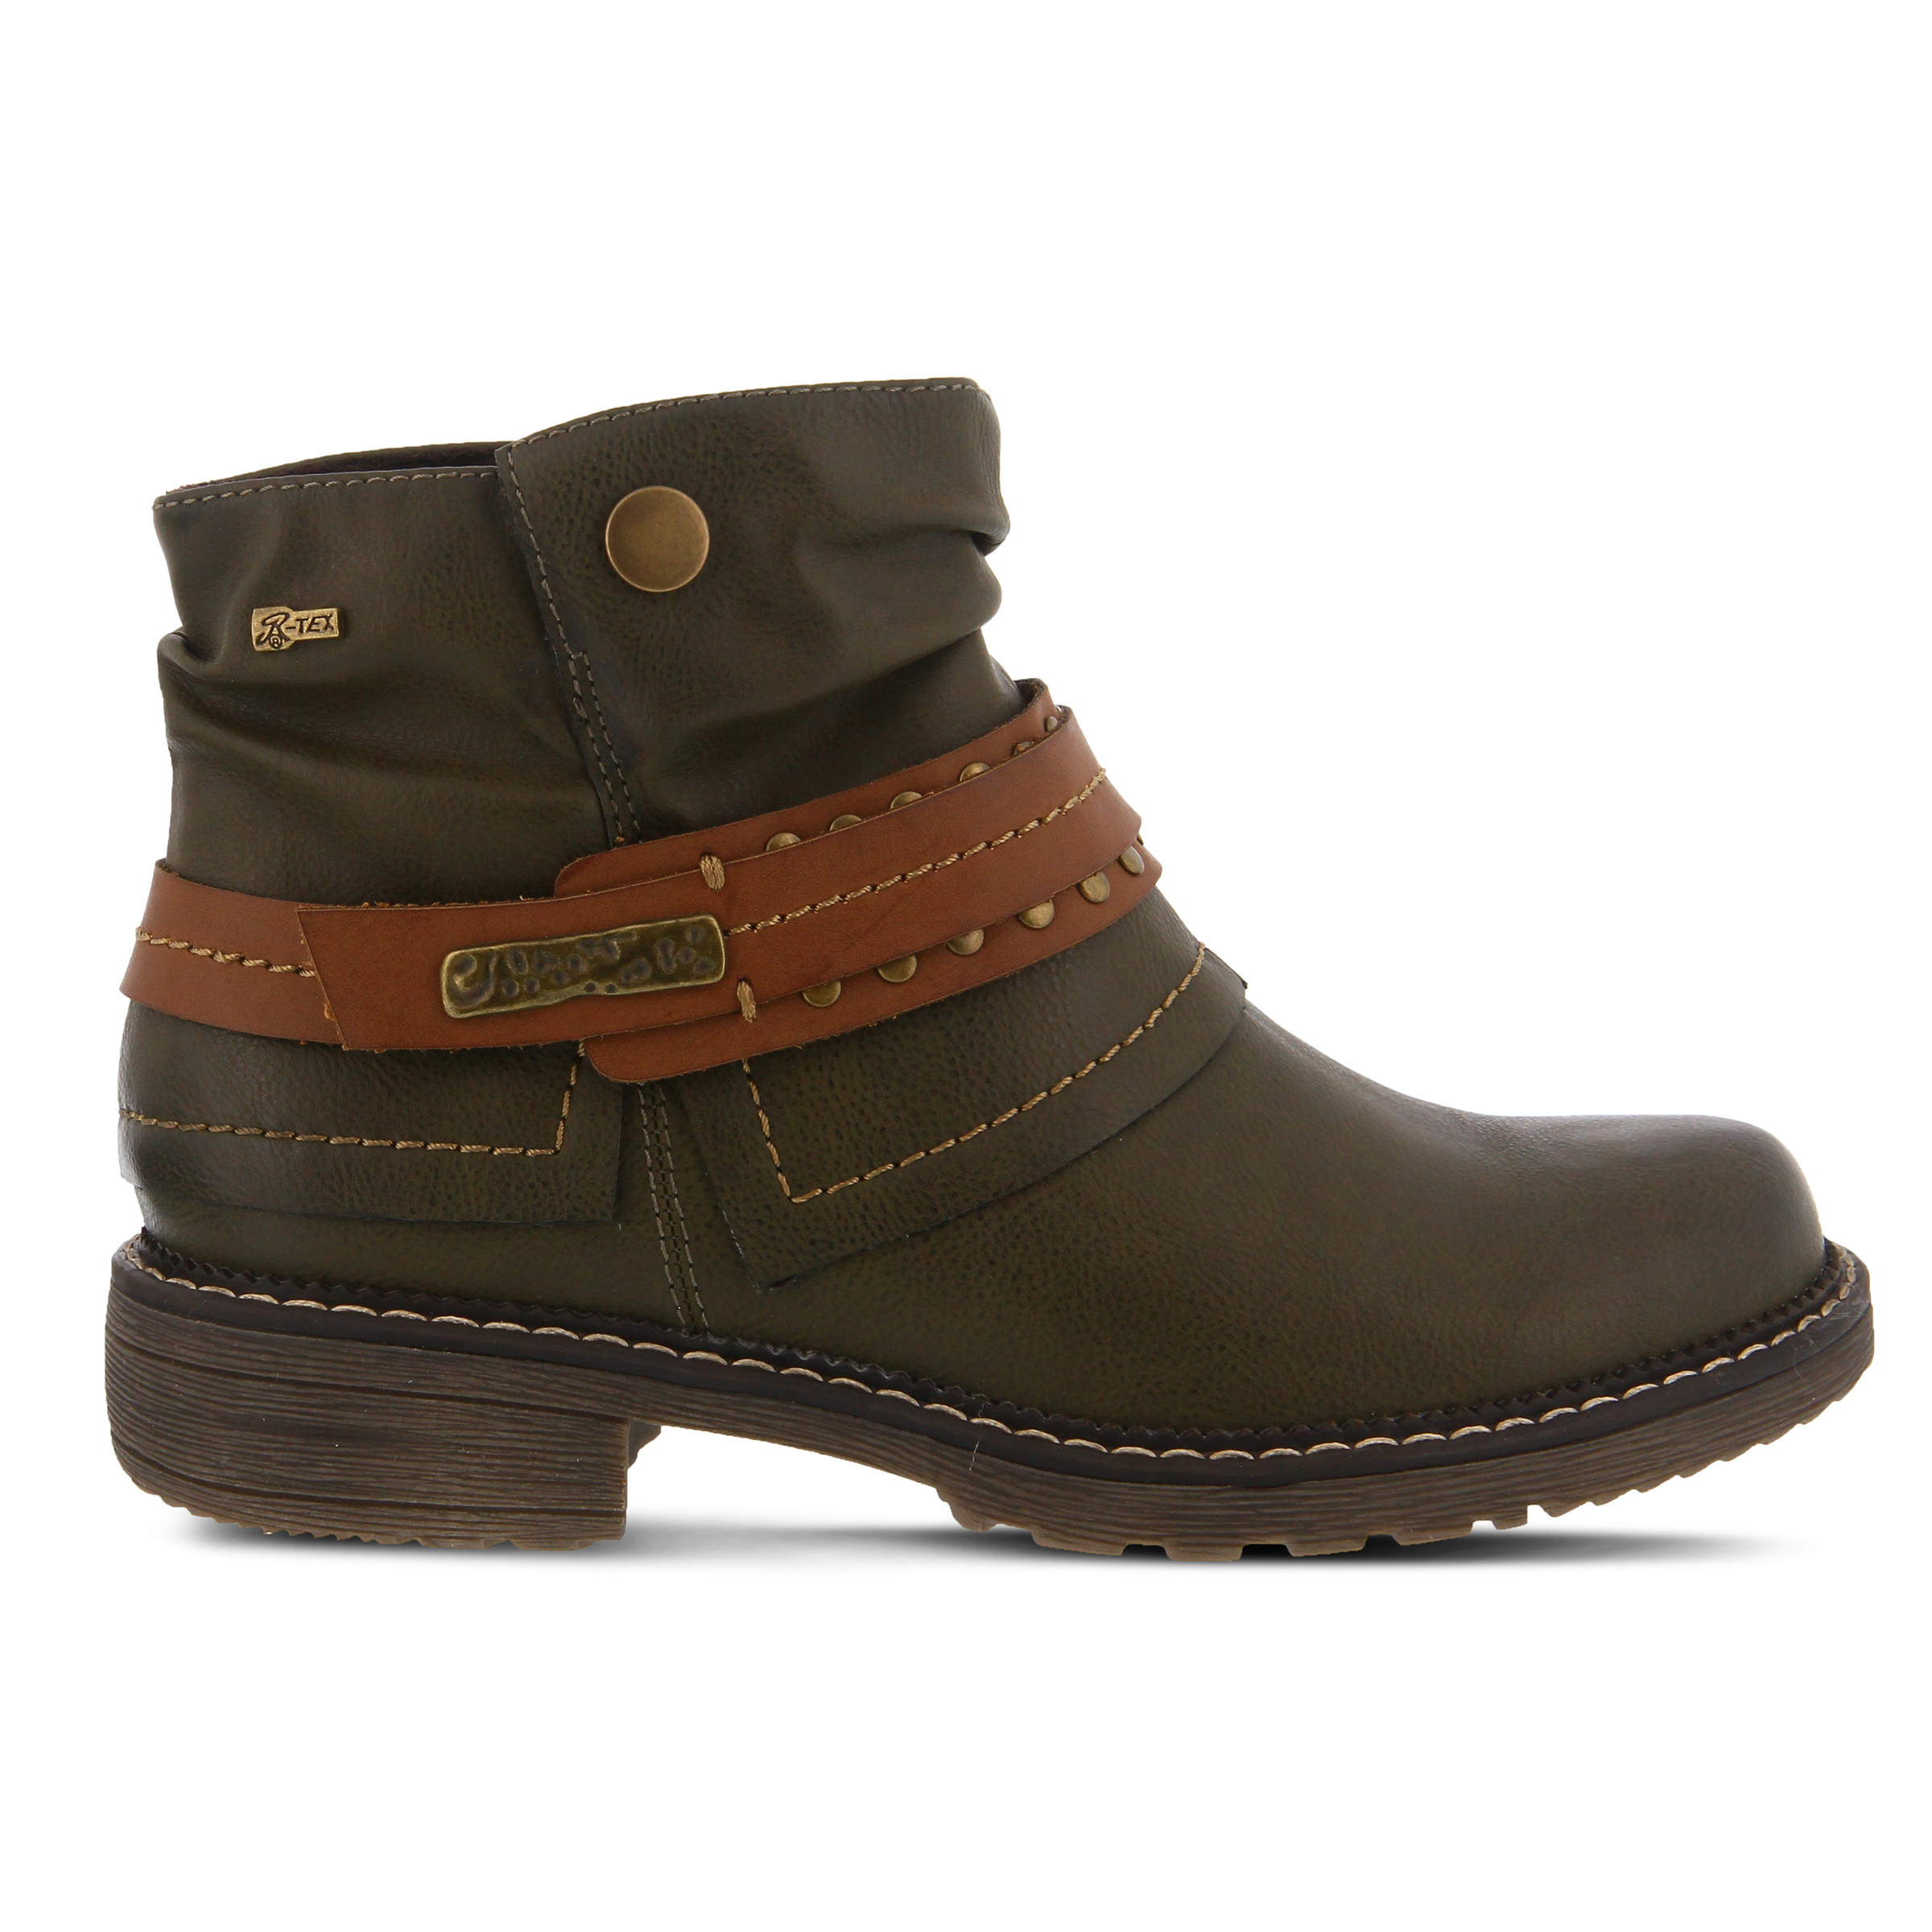 SPRING STEP Murna Women's Boots (Green Faux Leather)